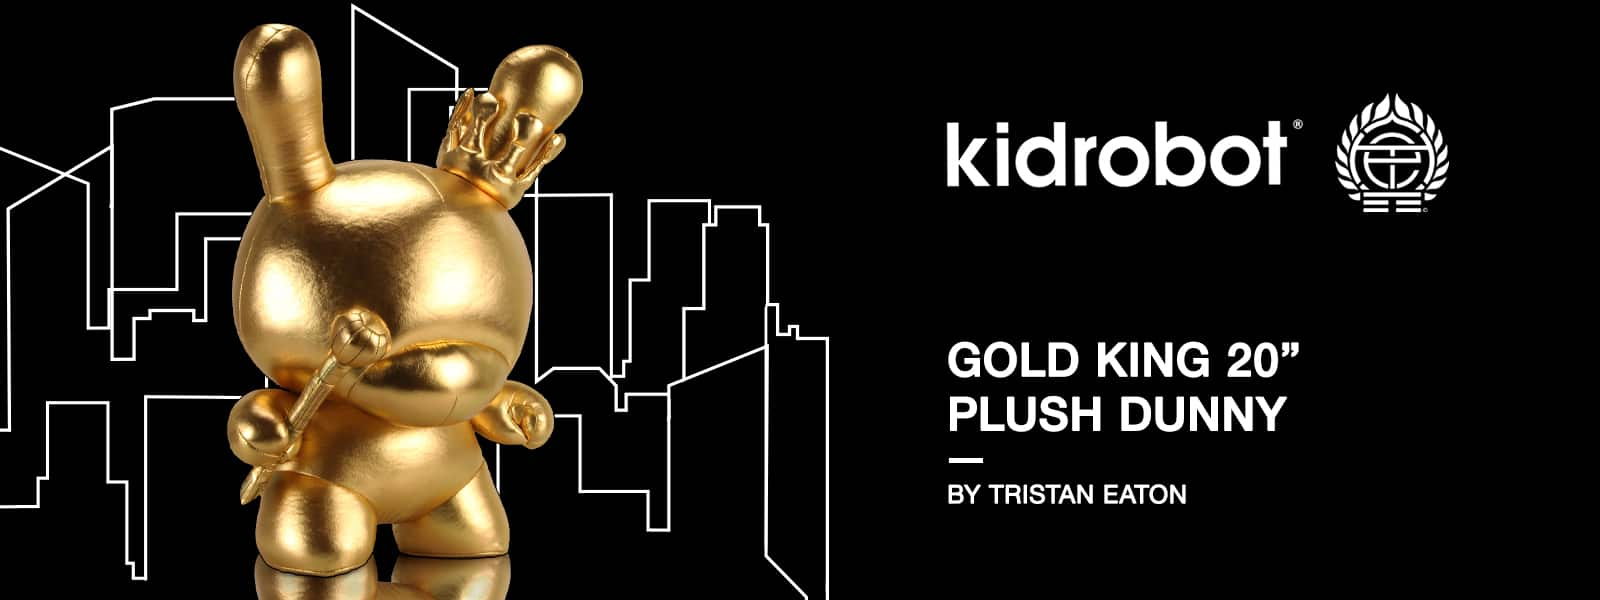 "Kidrobot Gold King 20"" Plush Dunny by Tristan Eaton"